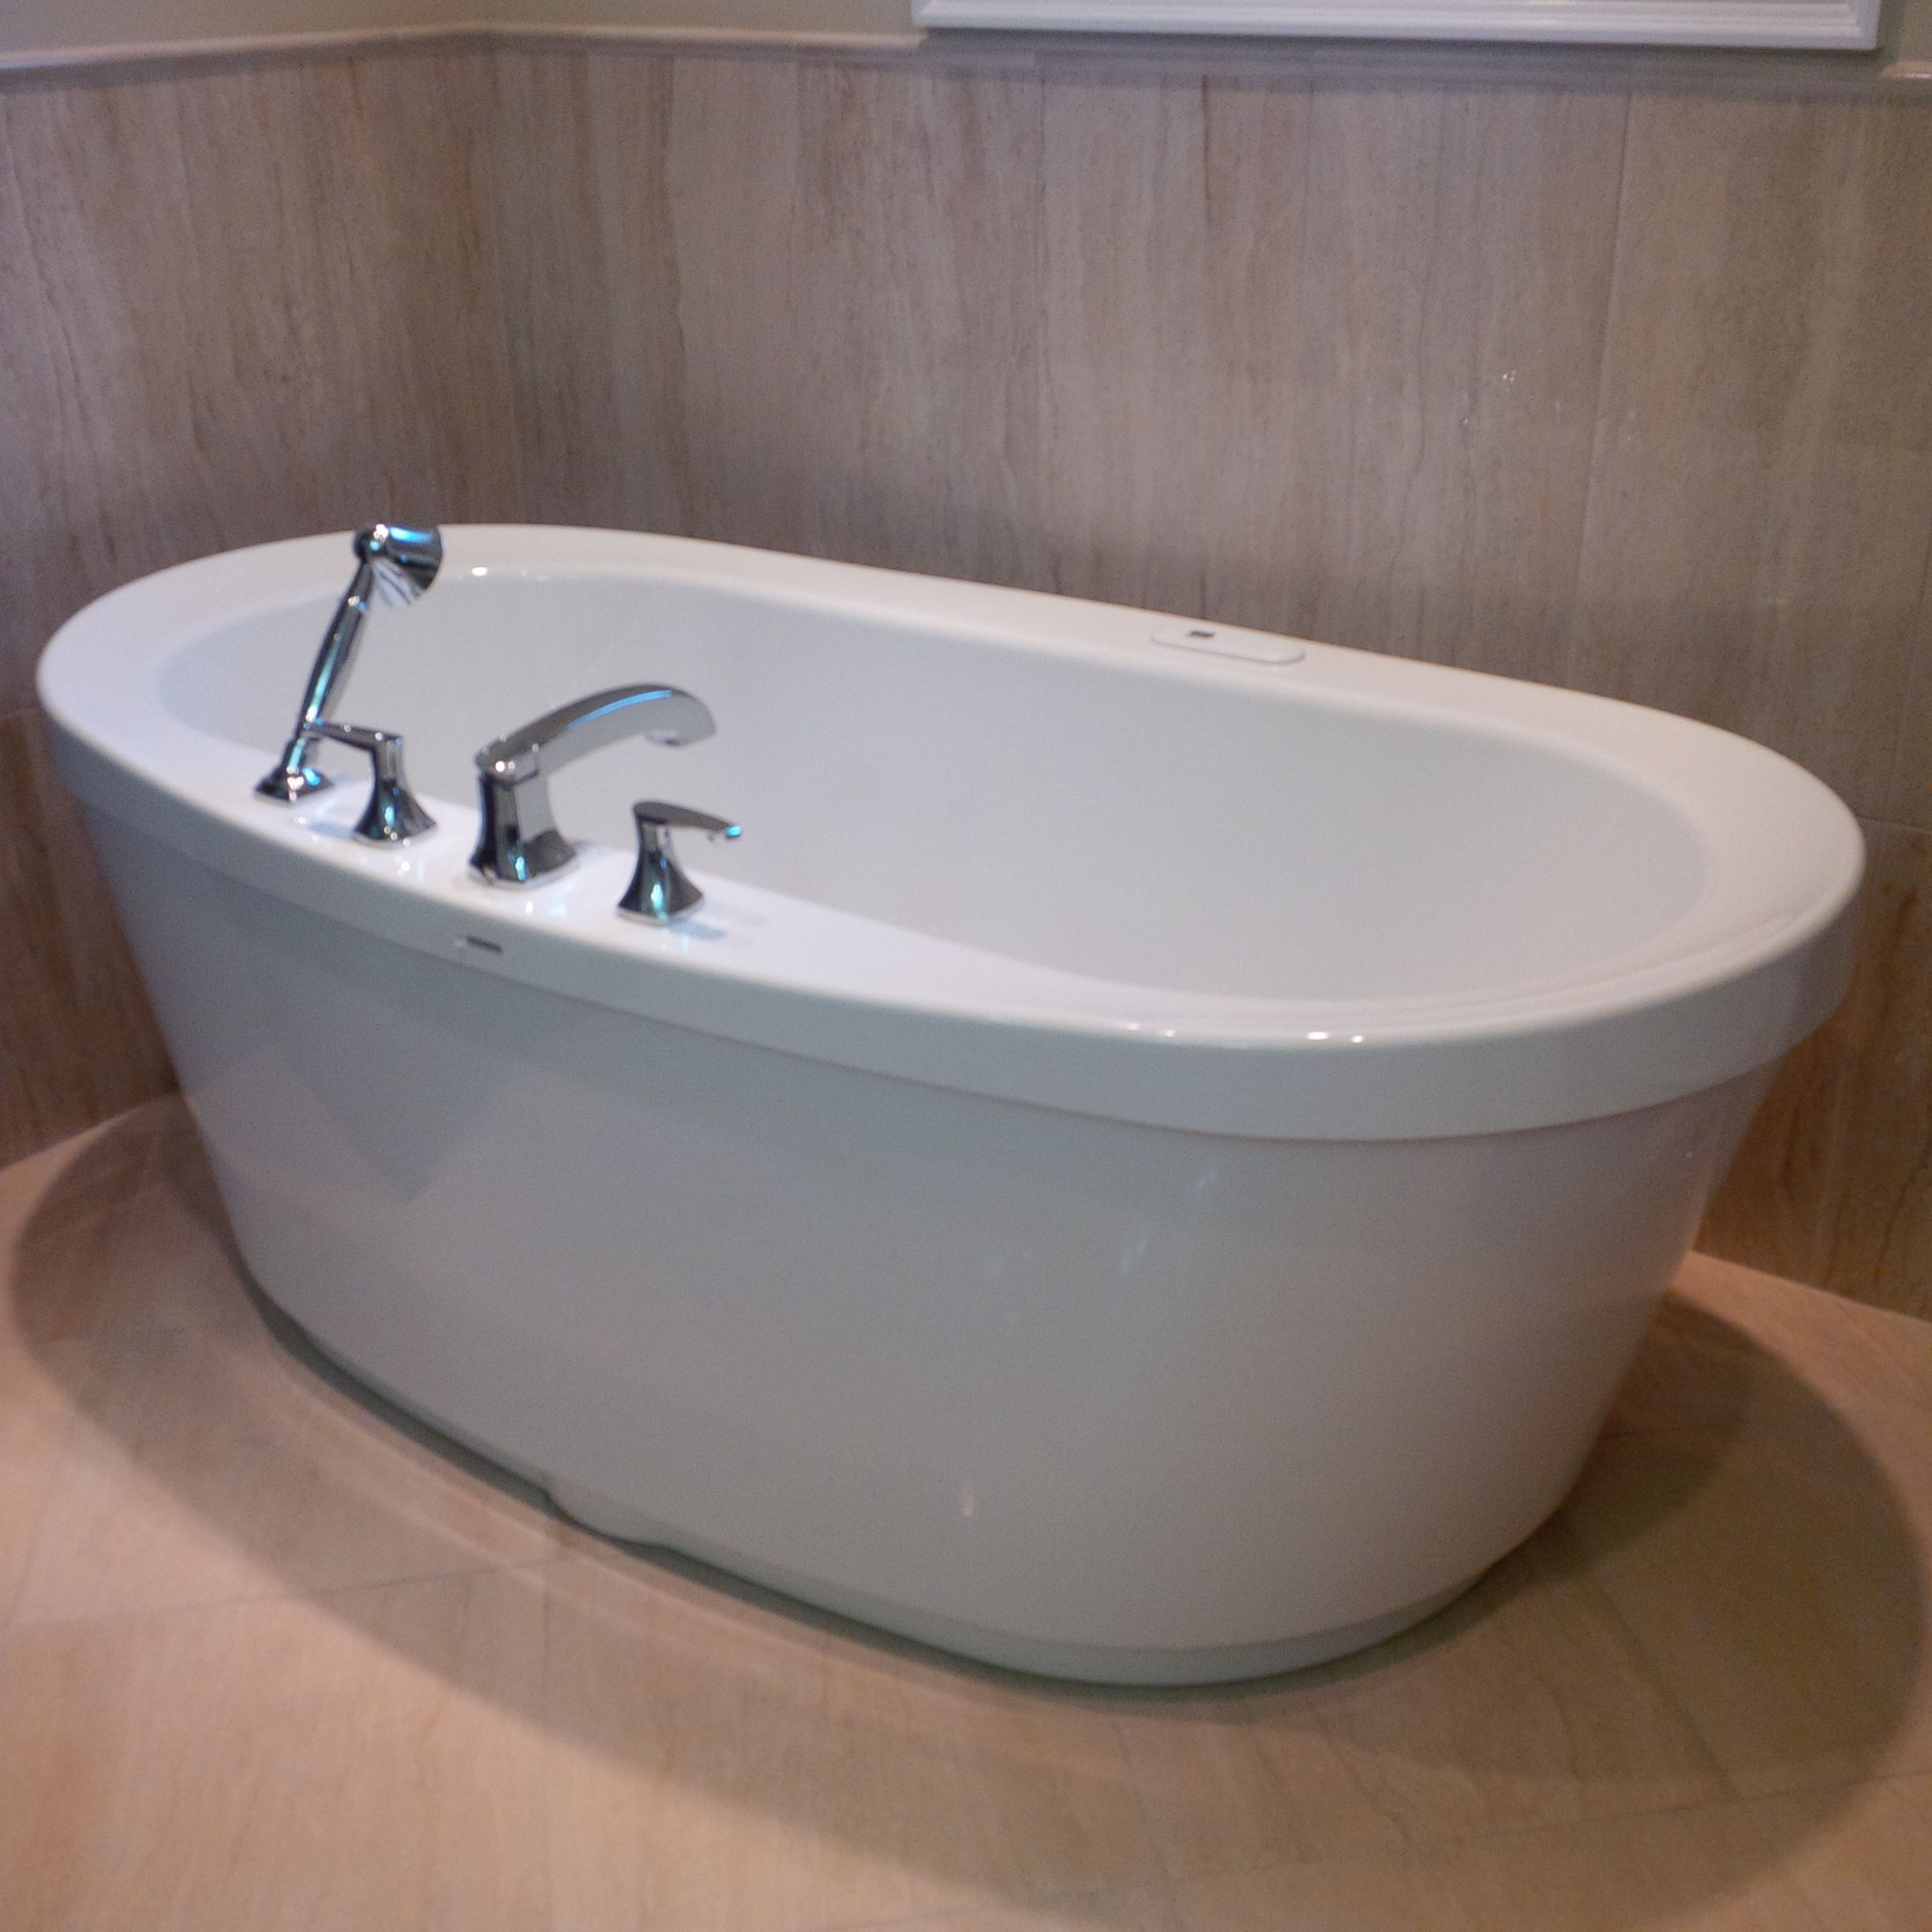 MAAX Freestanding Tub with Air Jets. Caledon Tile Renovation ...